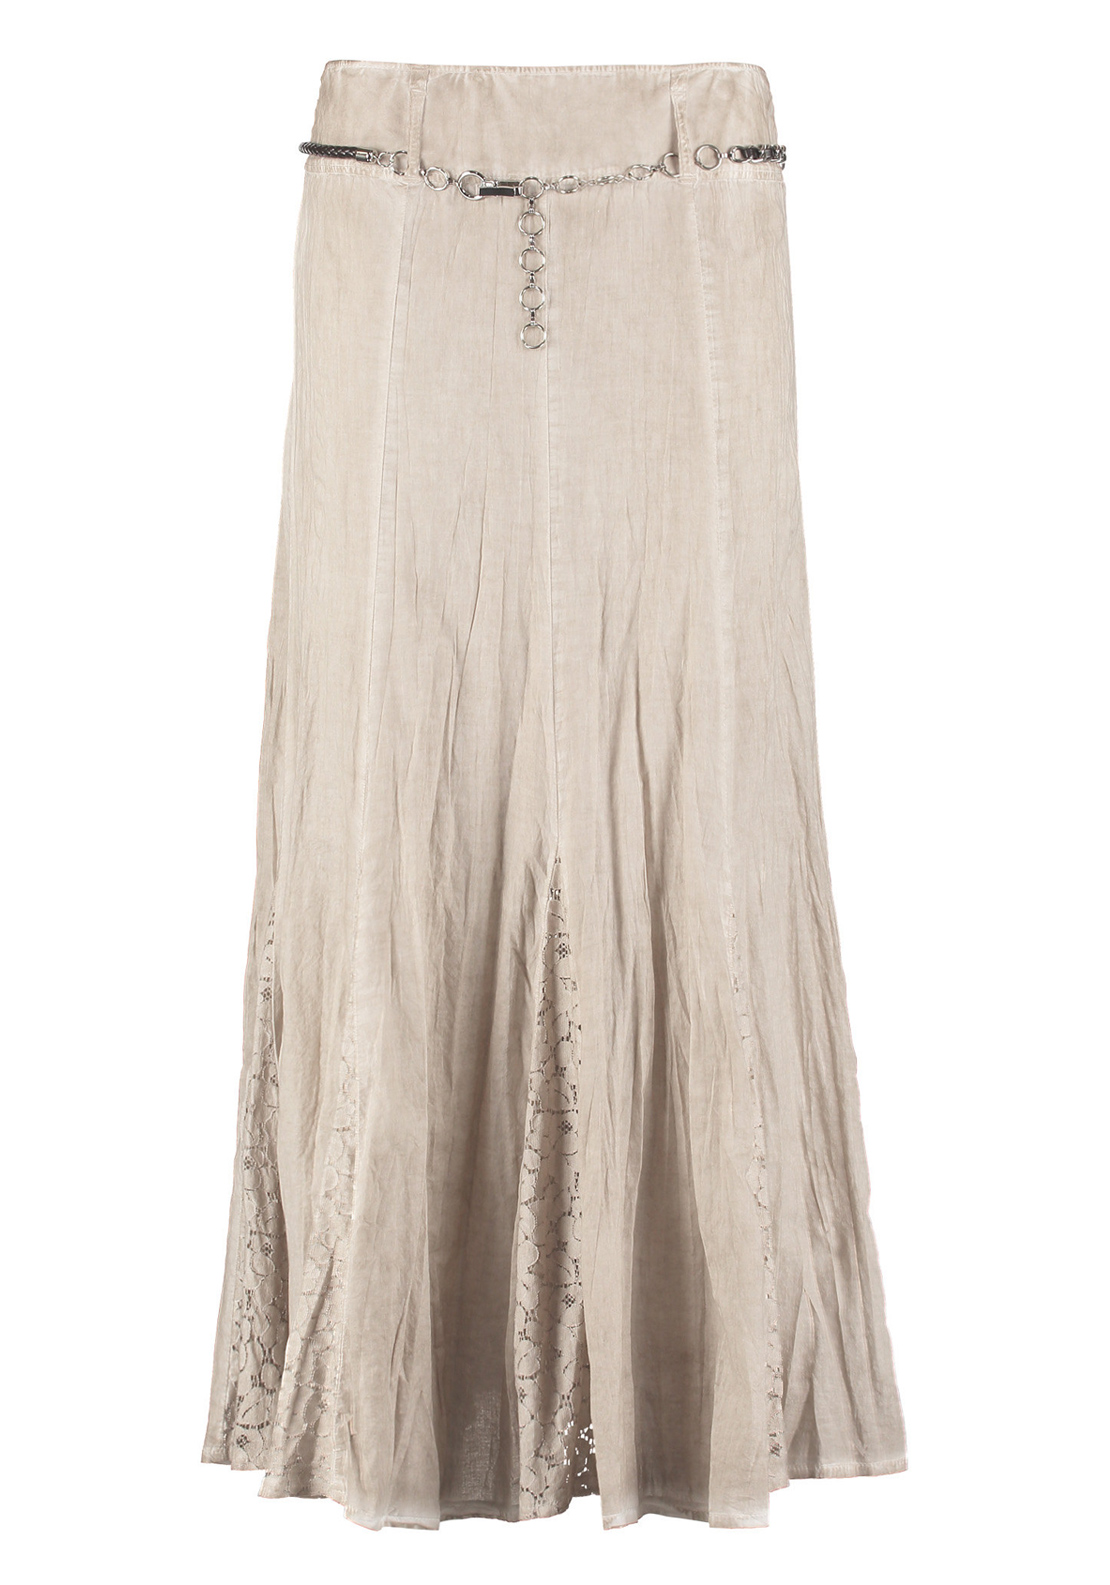 Gerry Weber A-Line Lace Trim Maxi Skirt, Beige